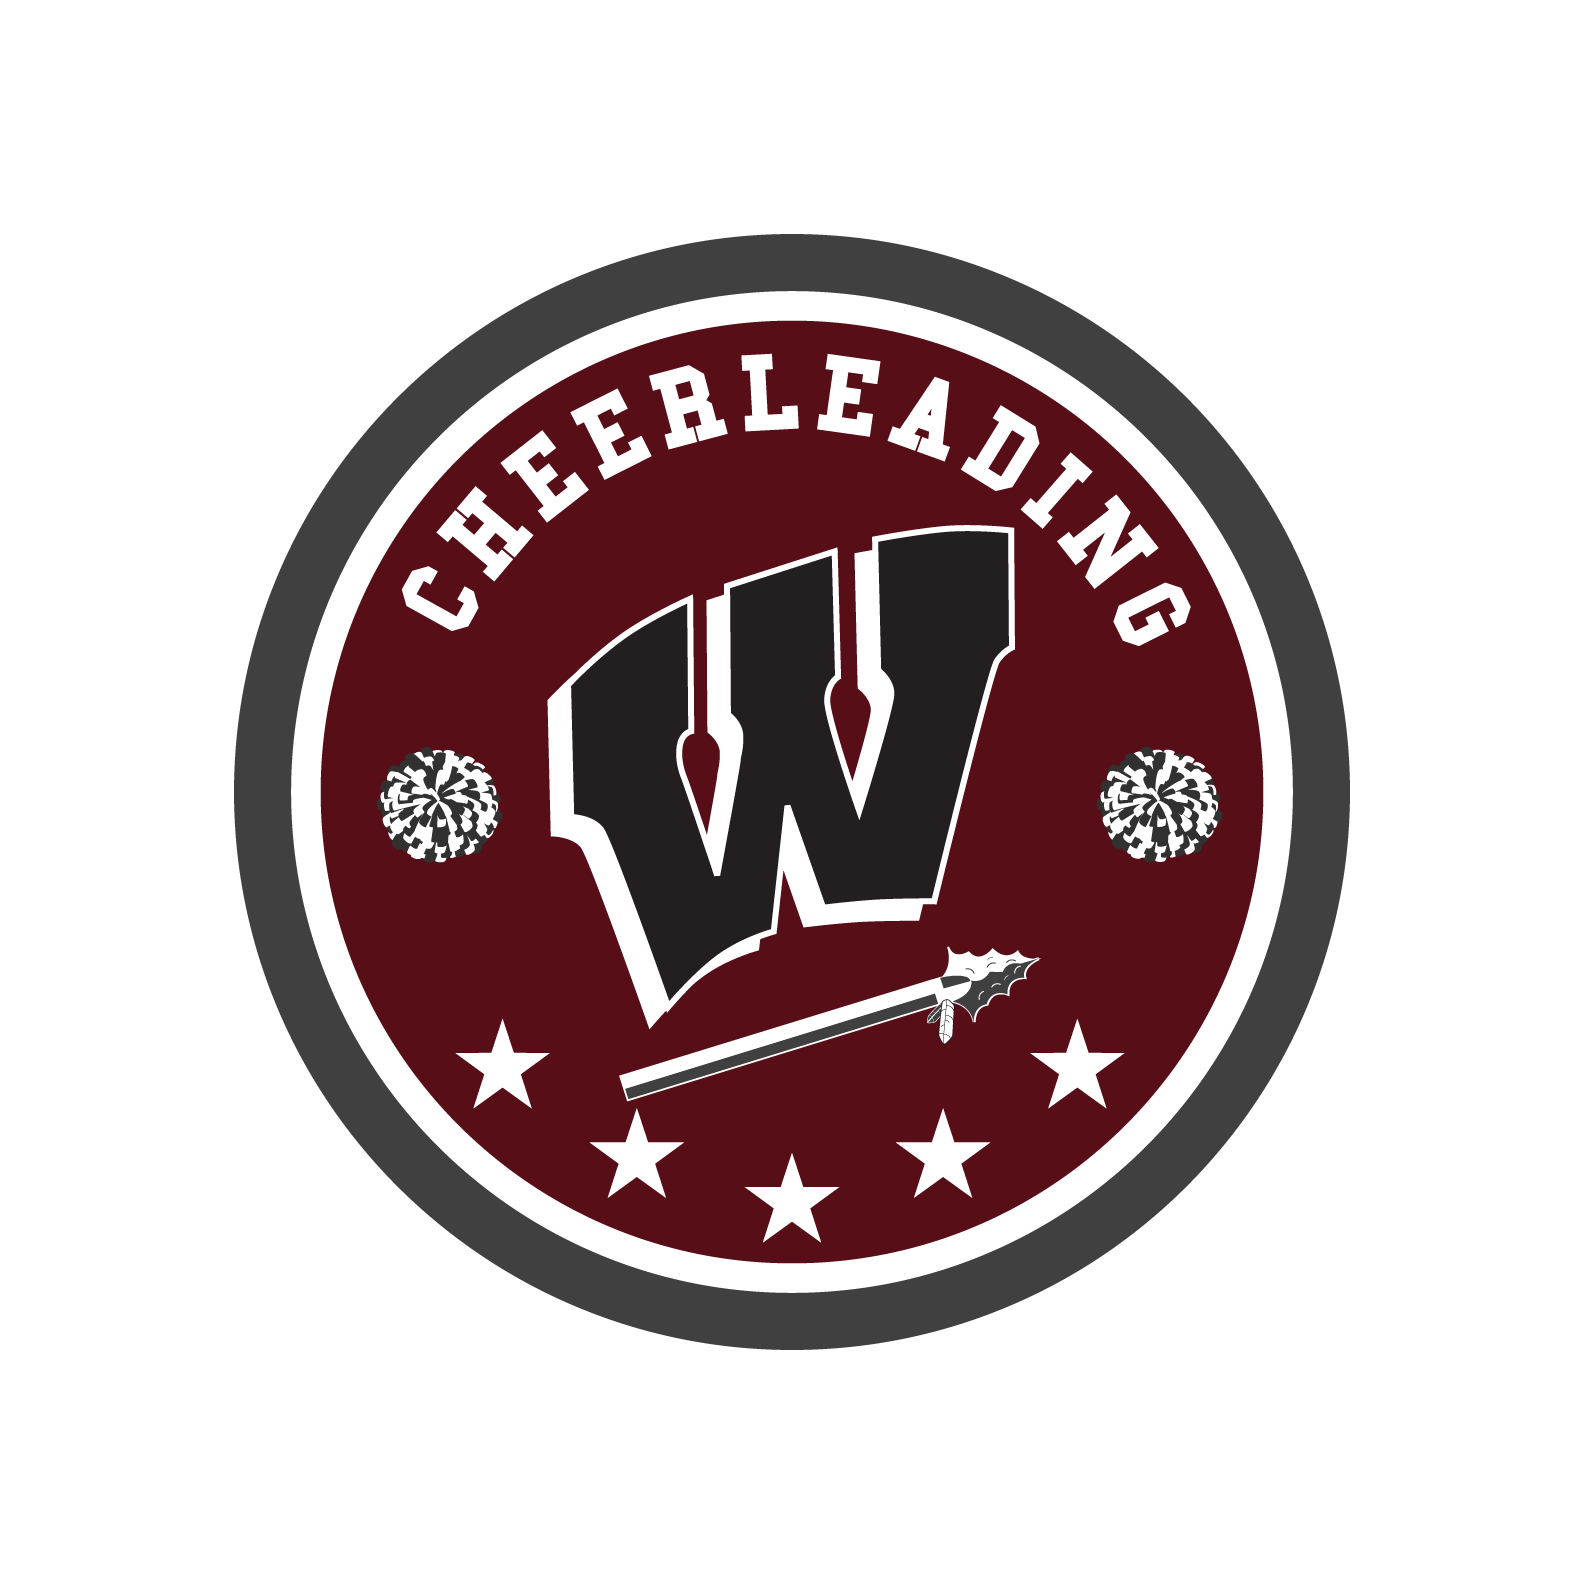 Windsor High School Cheerleading Logo